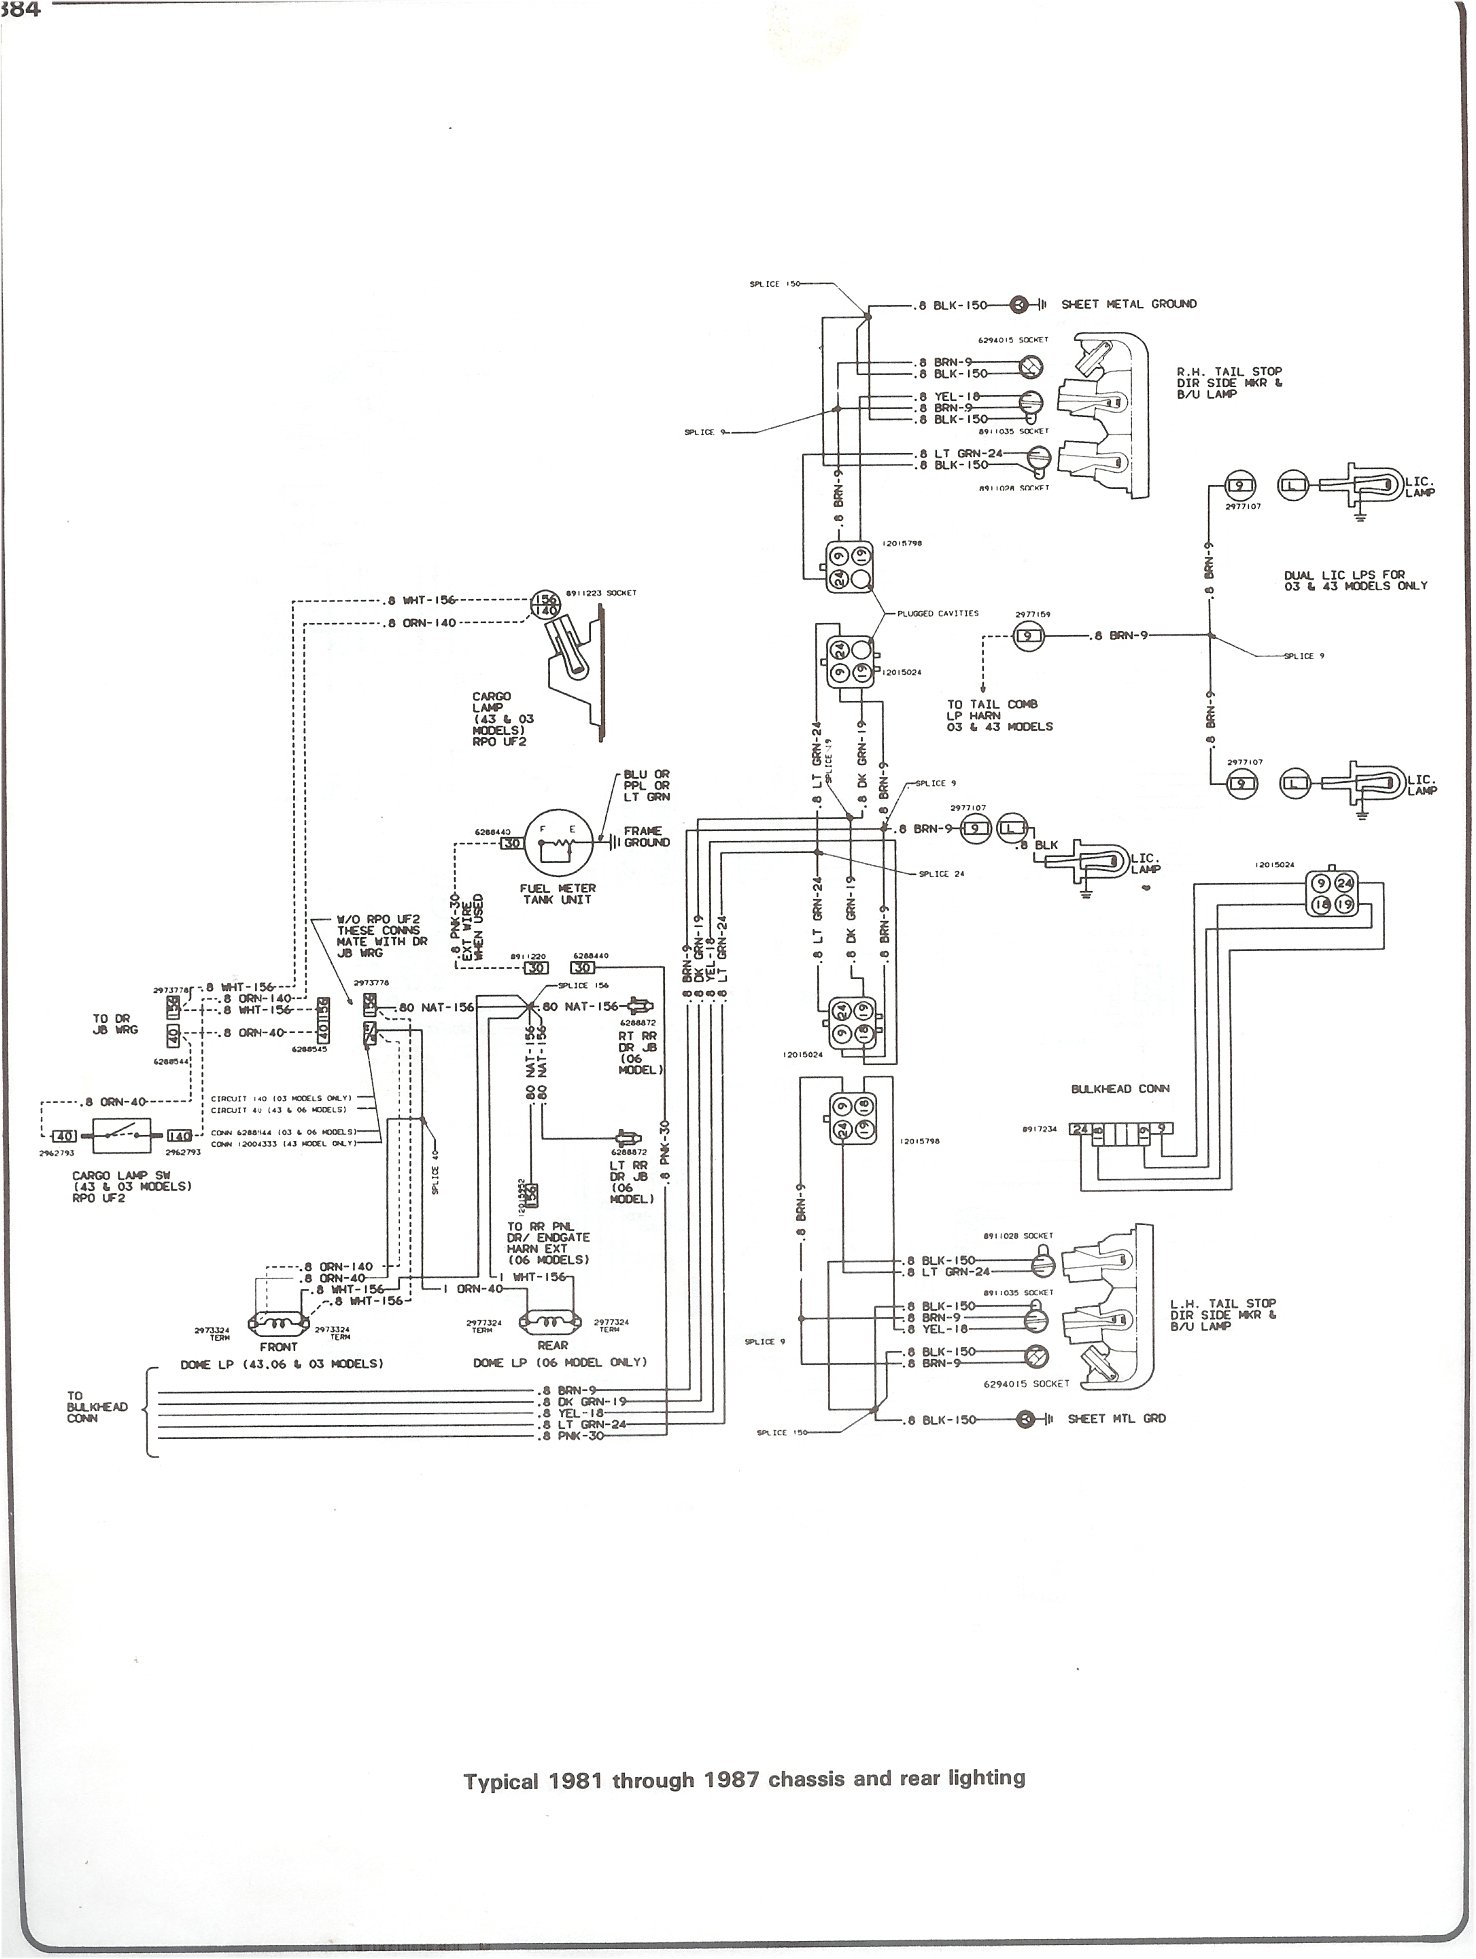 81 87_chass_rr_light complete 73 87 wiring diagrams 1985 chevy scottsdale wiring diagram at bakdesigns.co